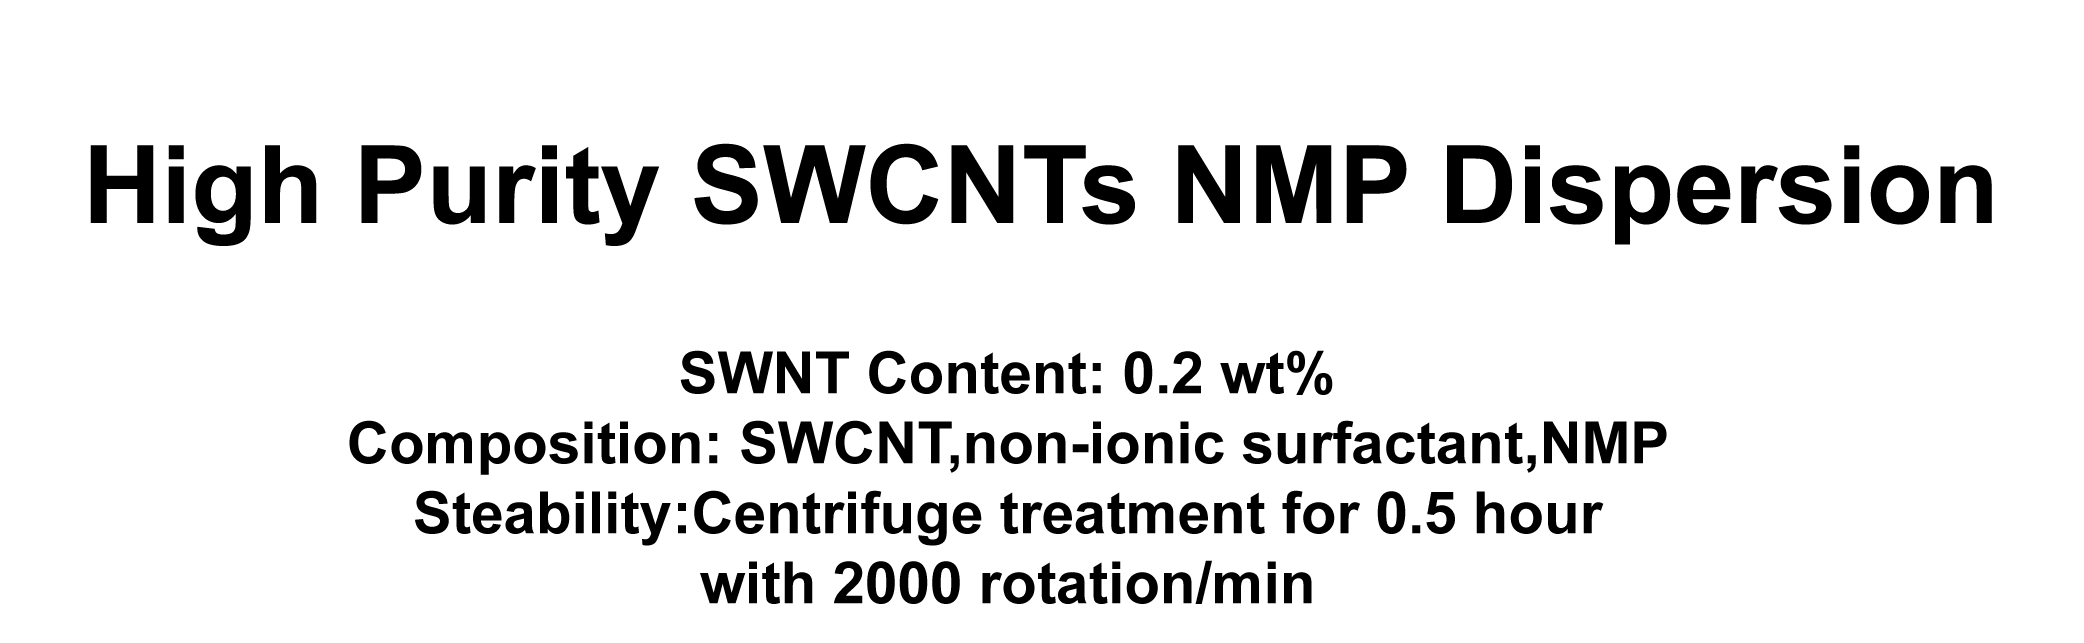 SWCNTs Dispersion